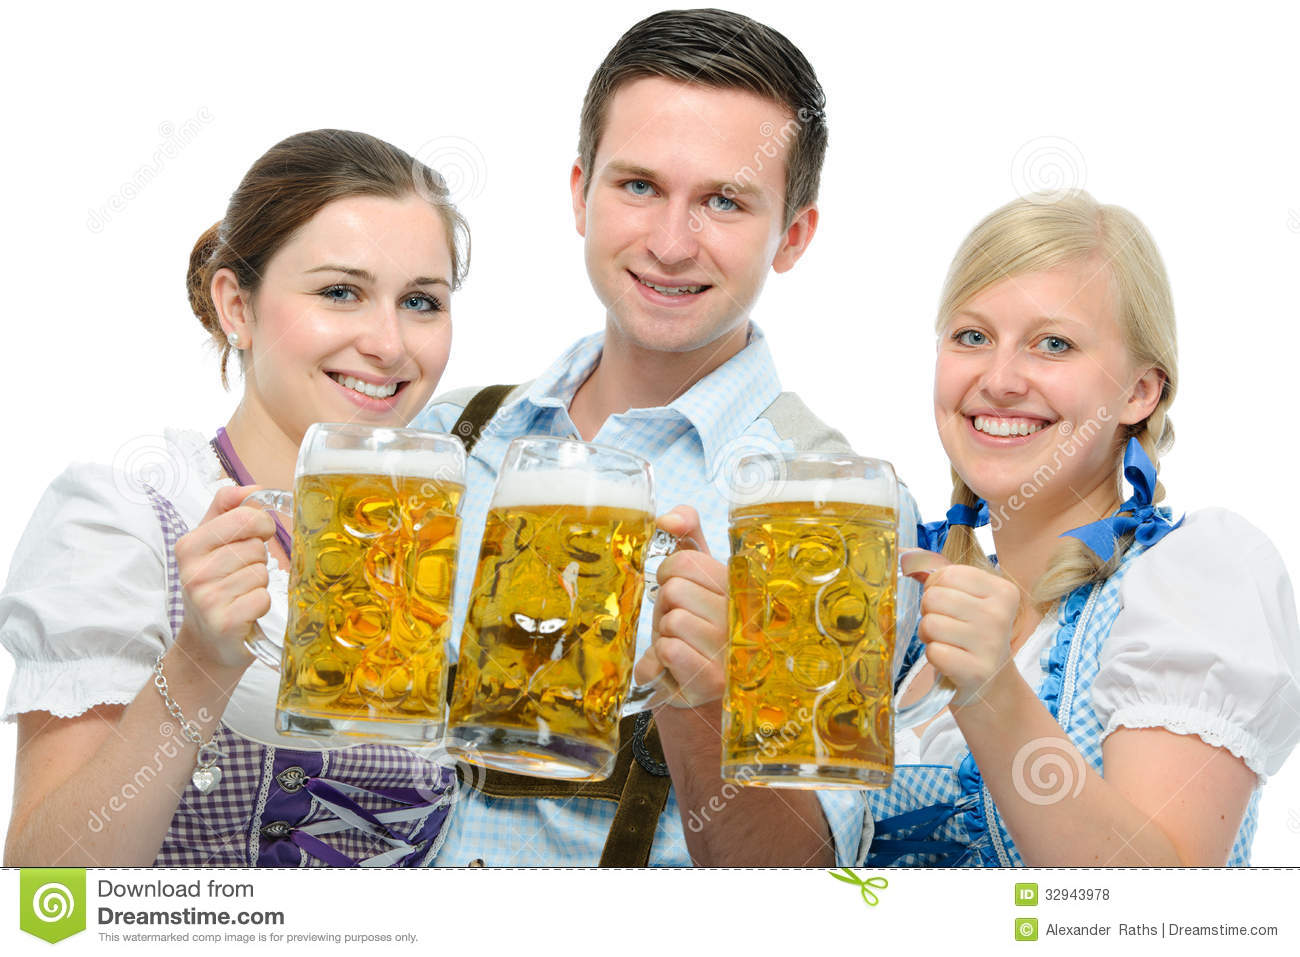 People In Traditional Bavarian Tracht Holding Oktoberfest Beer Steins